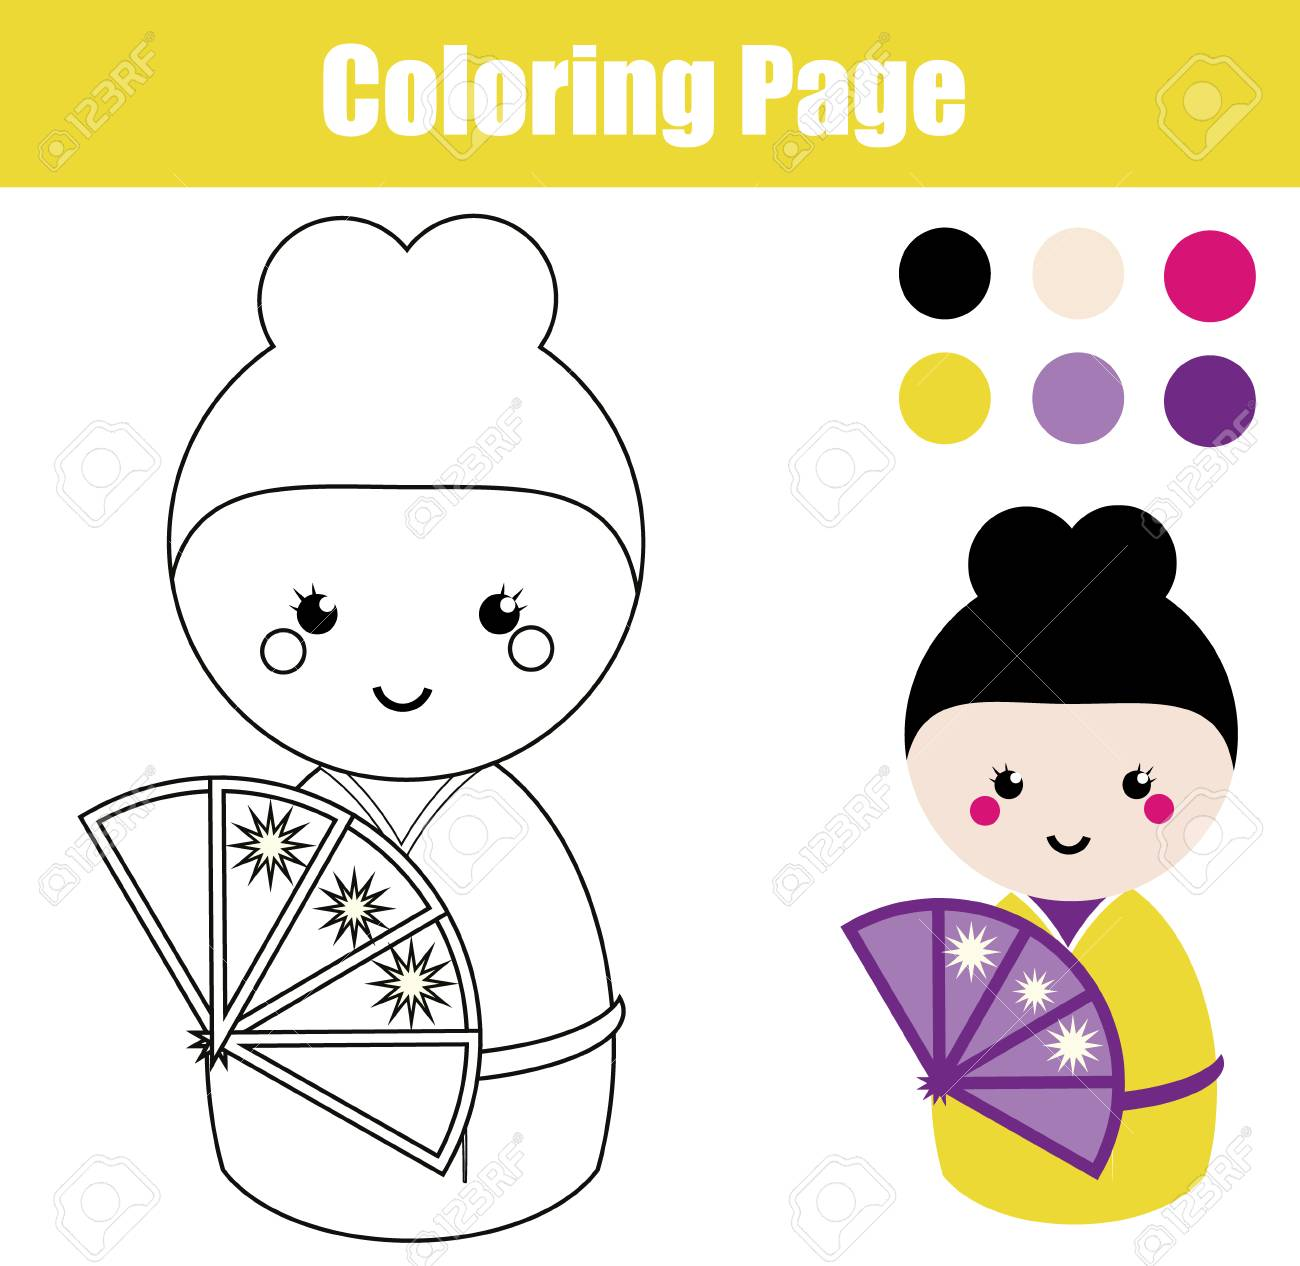 Coloring Page With Cute Japanese Kokeshi Doll Children Educational Game Drawing Activity Printable